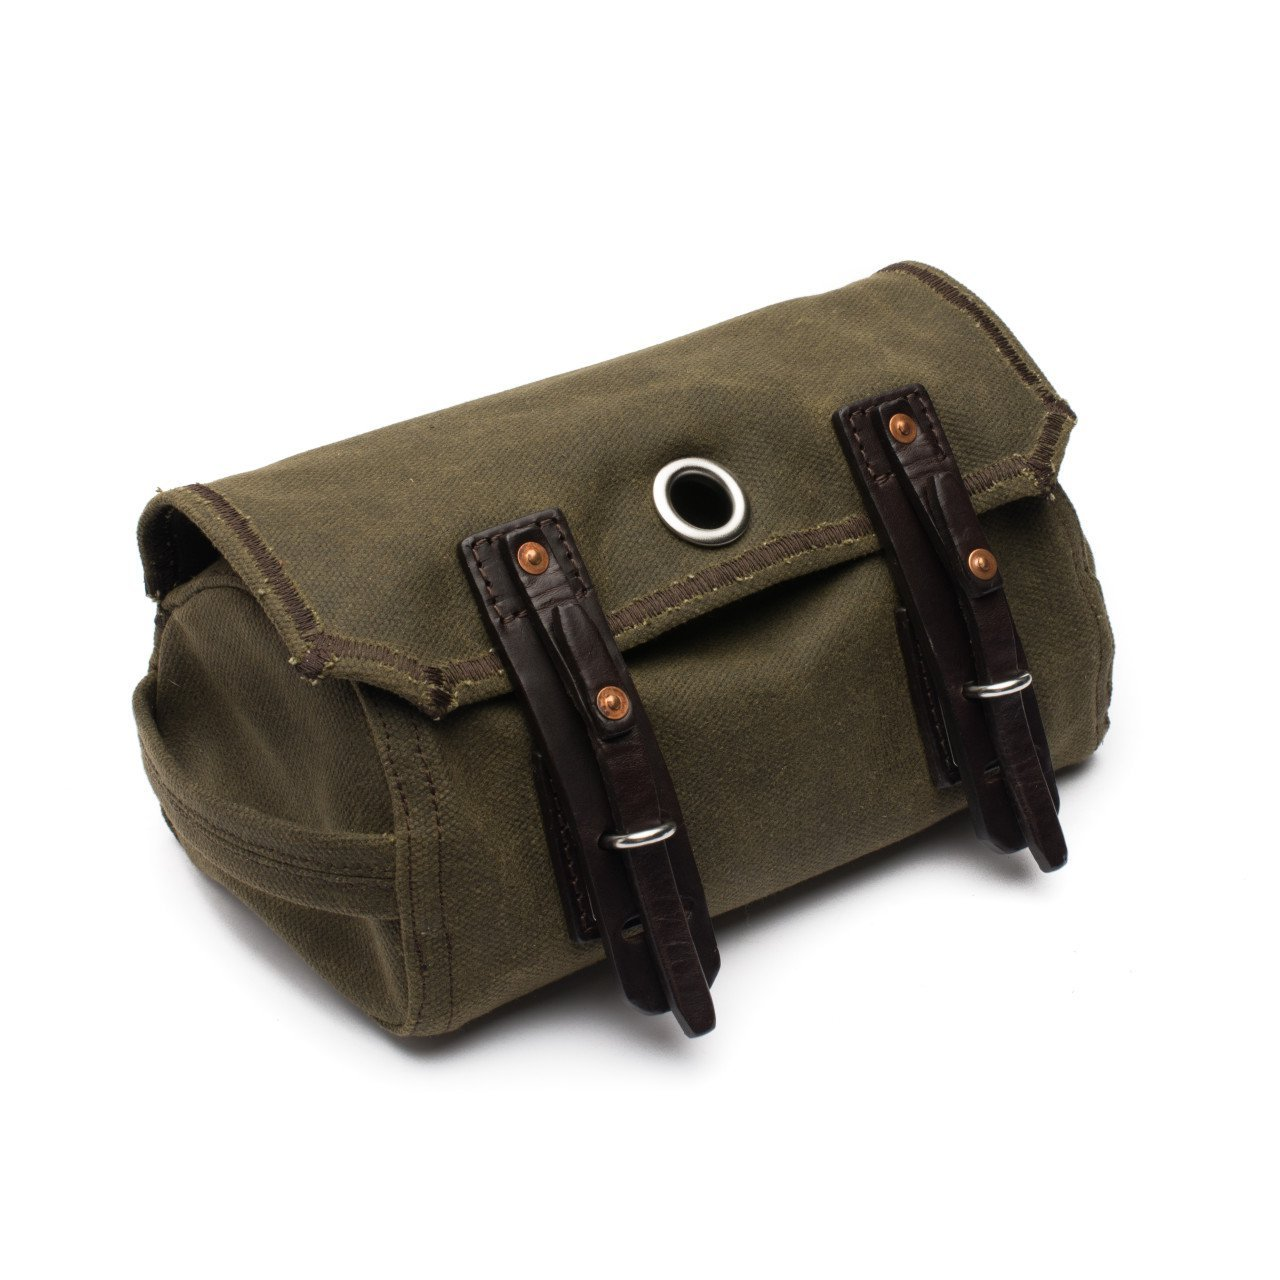 Saddleback Leather Canvas Dopp Kit - Hanging Canvas and Leather Men's Toiletry Bag - 100 Year Warranty